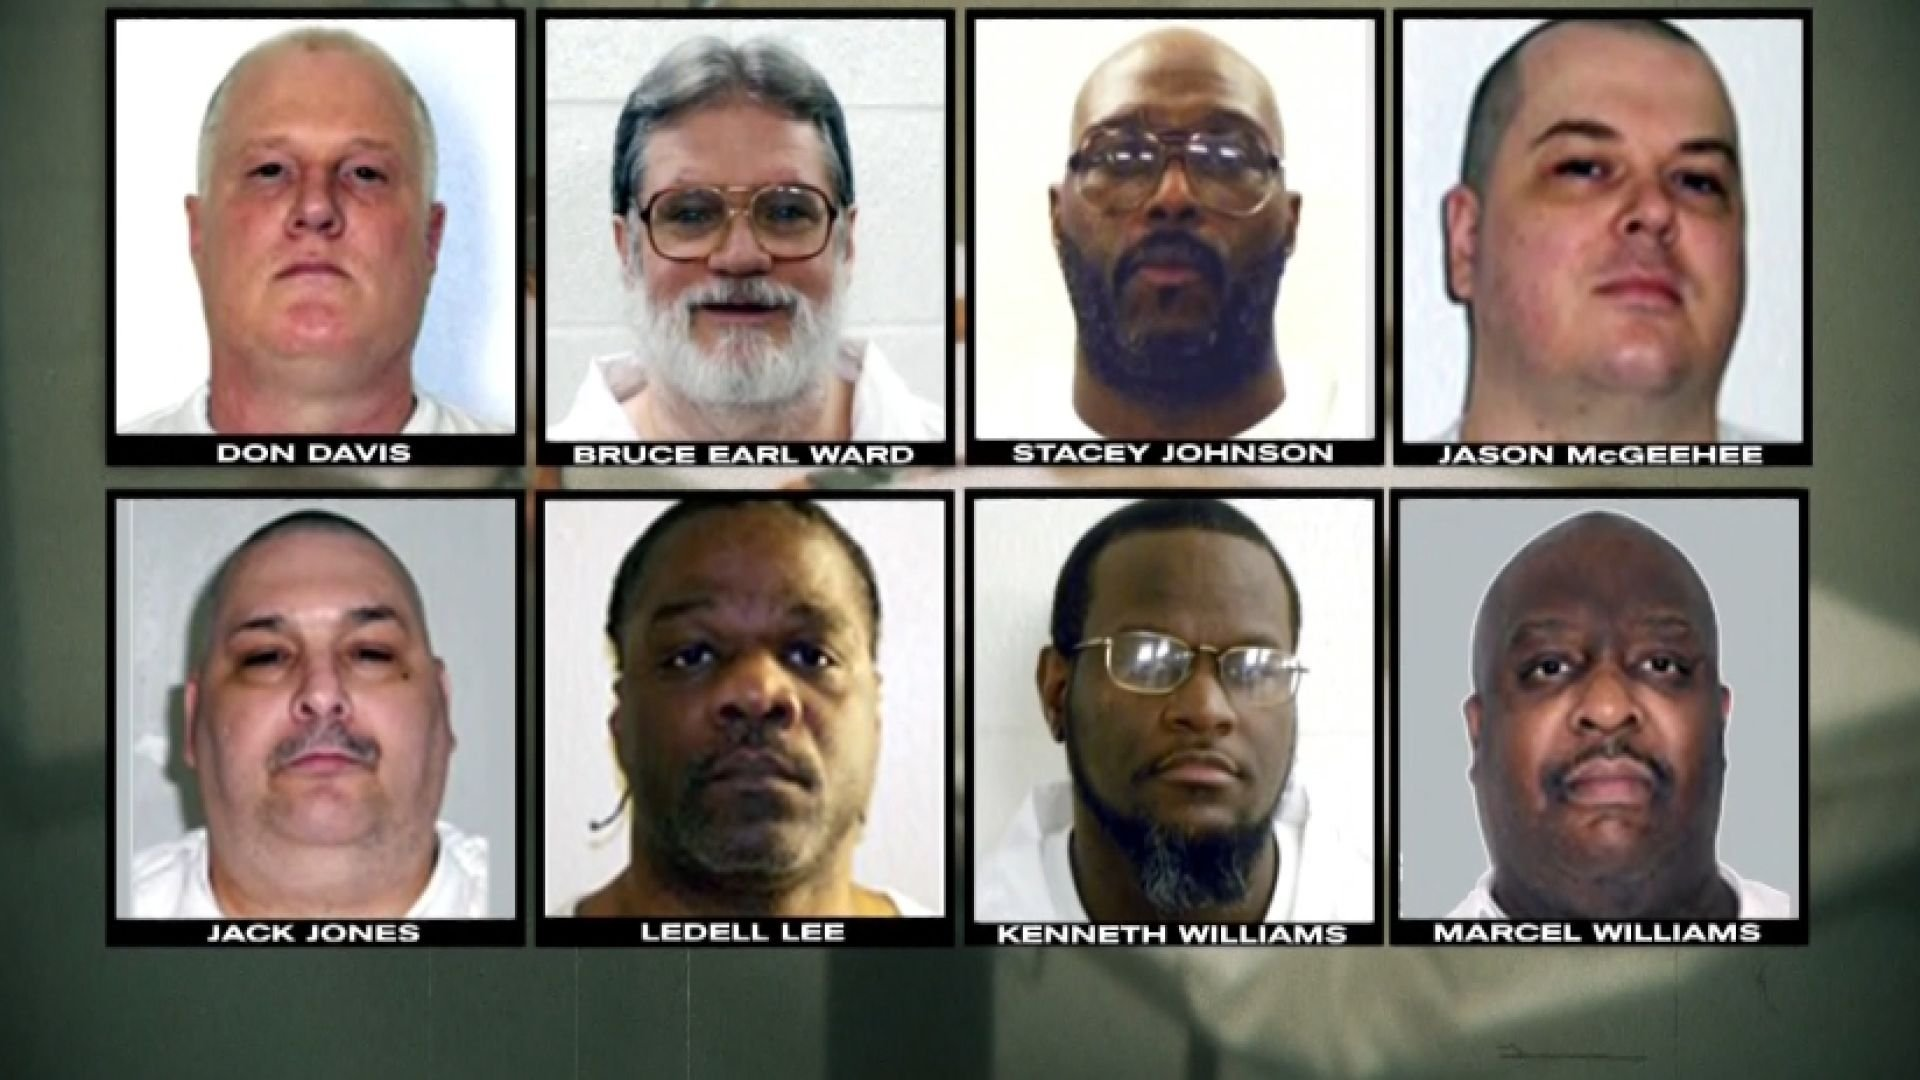 Arkansas had scheduled 8 executions in a 10-day period.